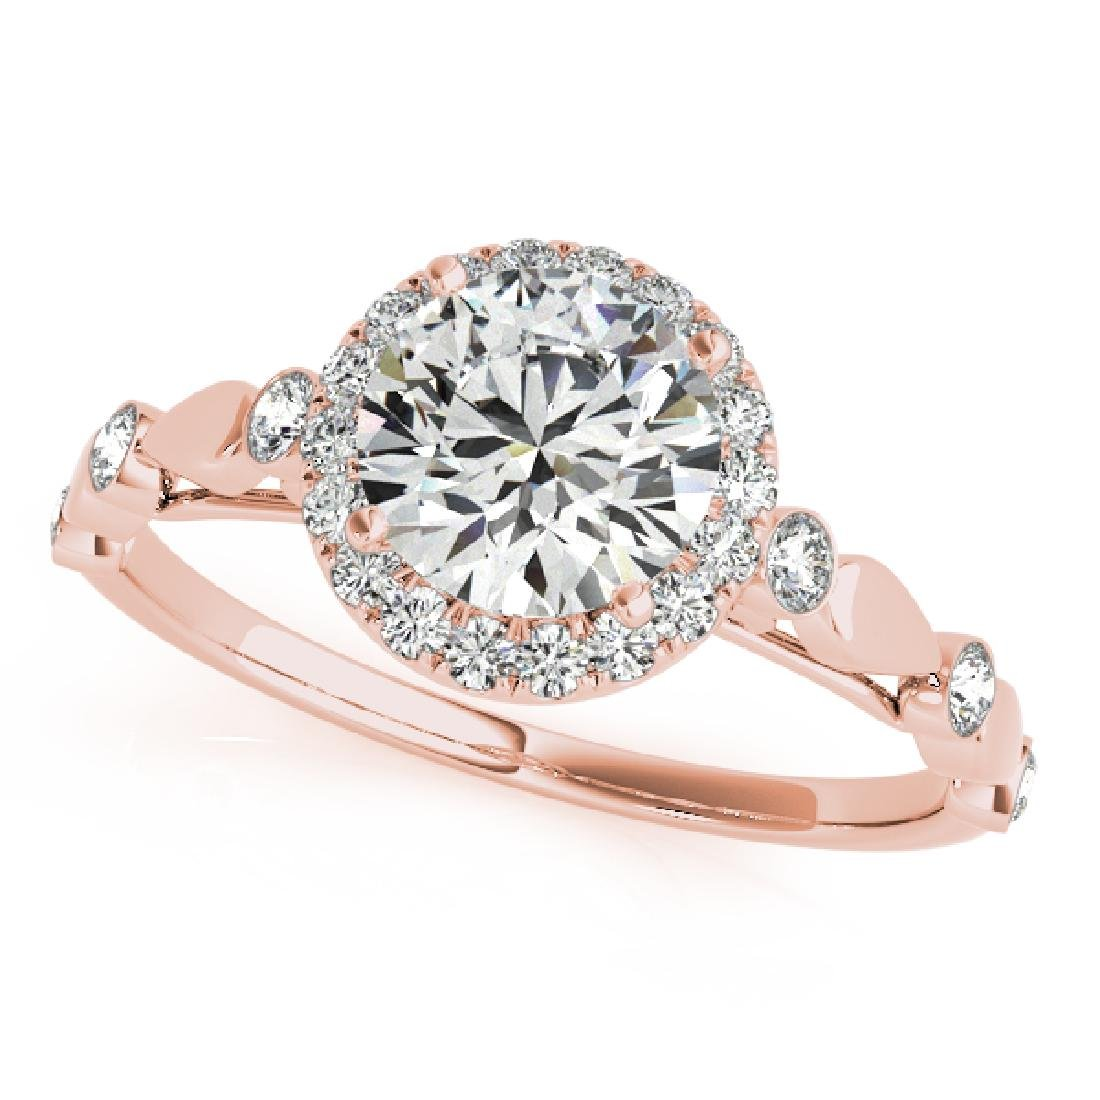 CERTIFIED 18K ROSE GOLD 1.56 CT G-H/VS-SI1 DIAMOND HALO